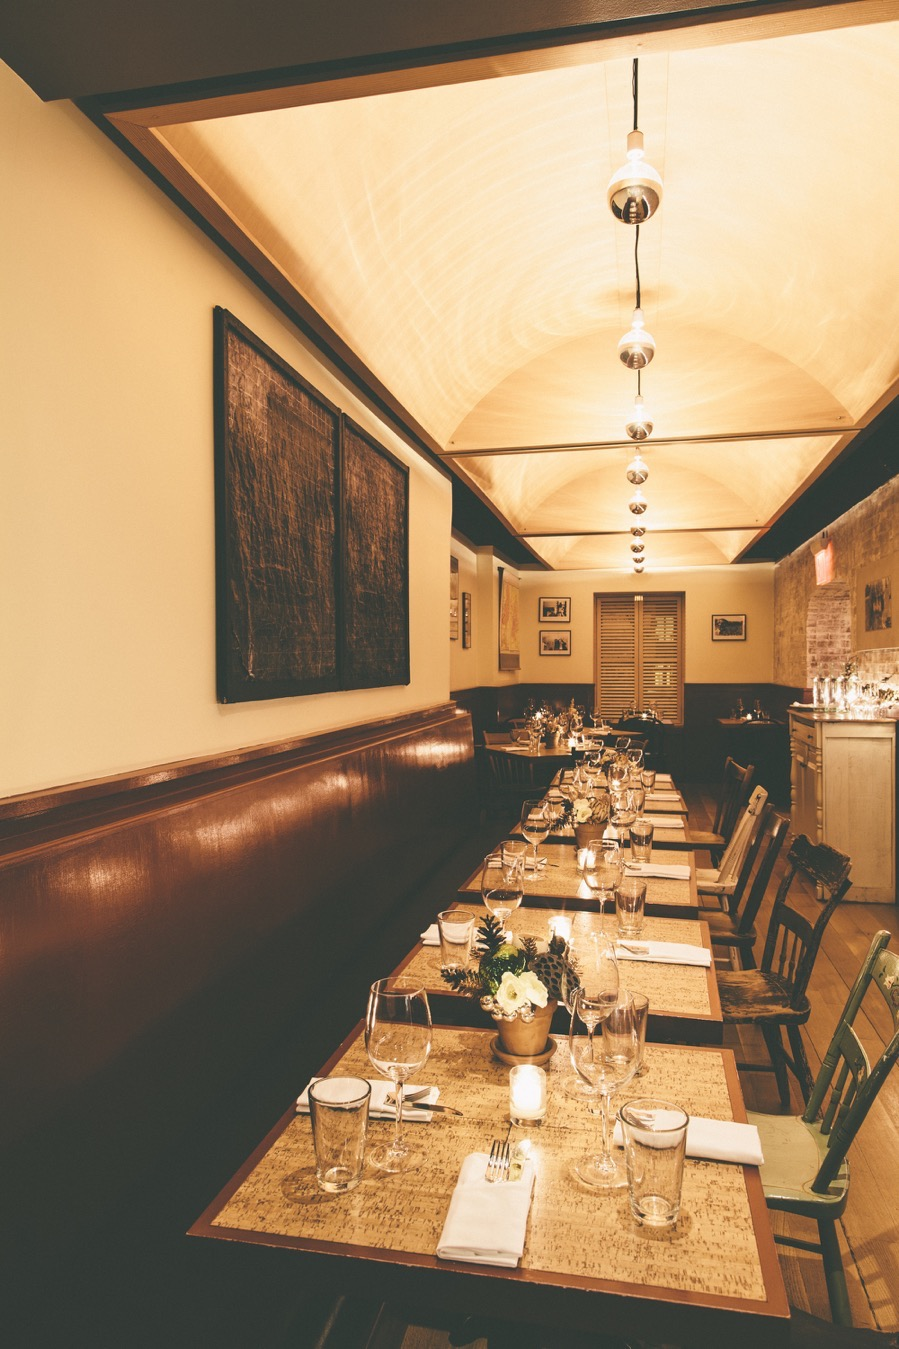 Photo #5 Main Dining Room at Porsena